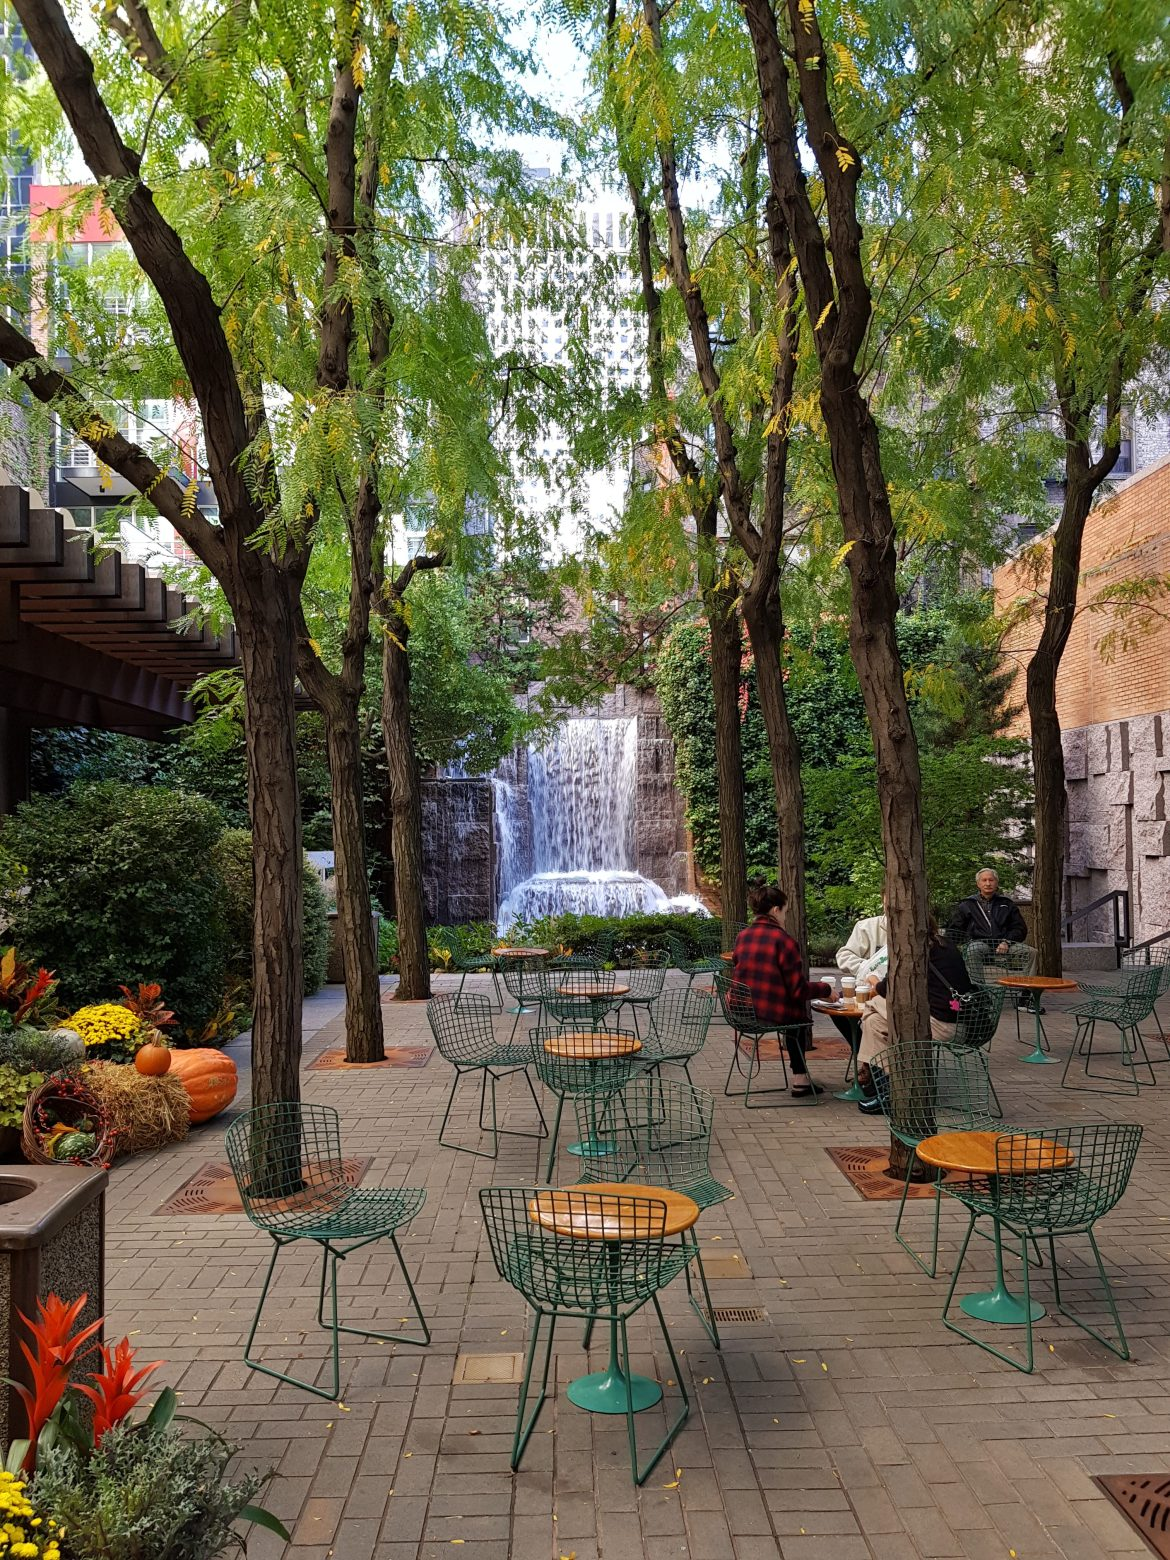 New York - Greenacre Park